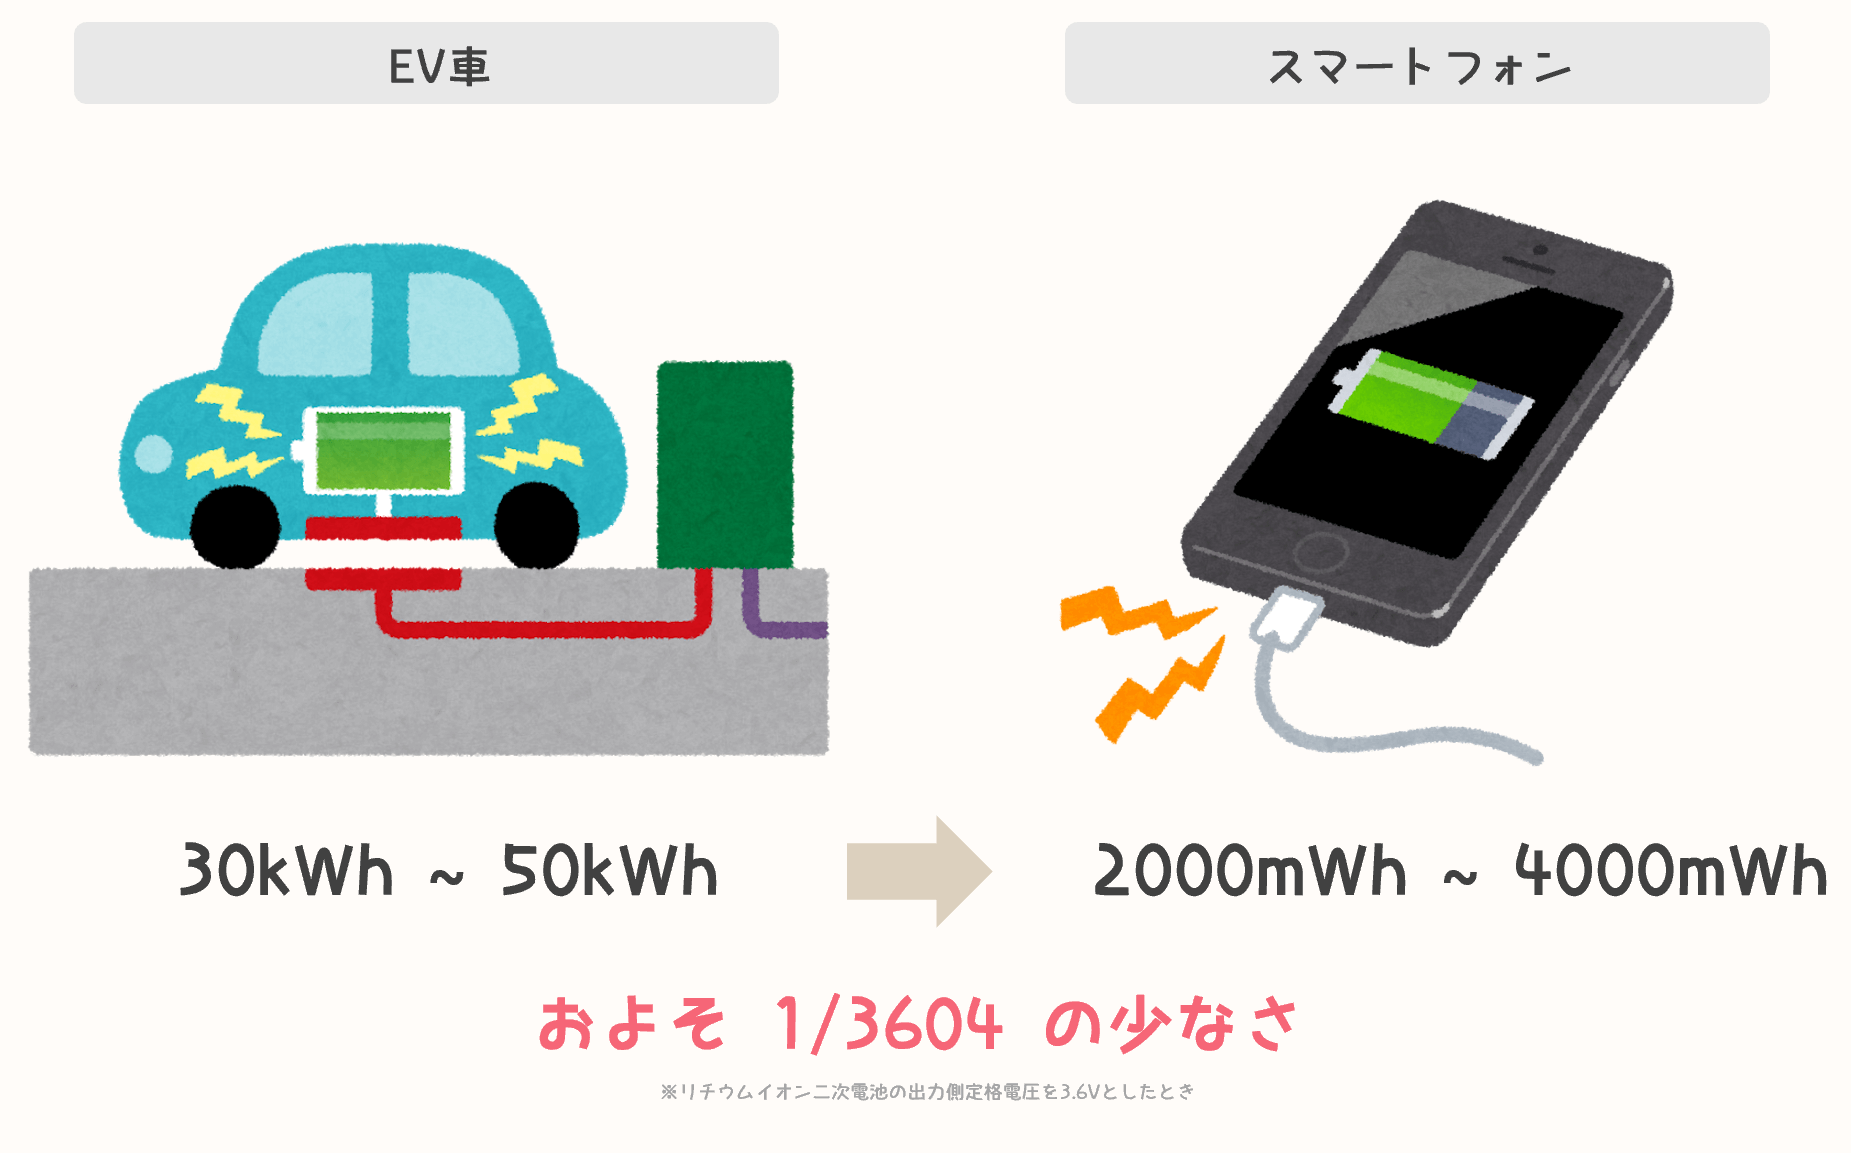 ev-car-and-smartphont-battery-size-compare